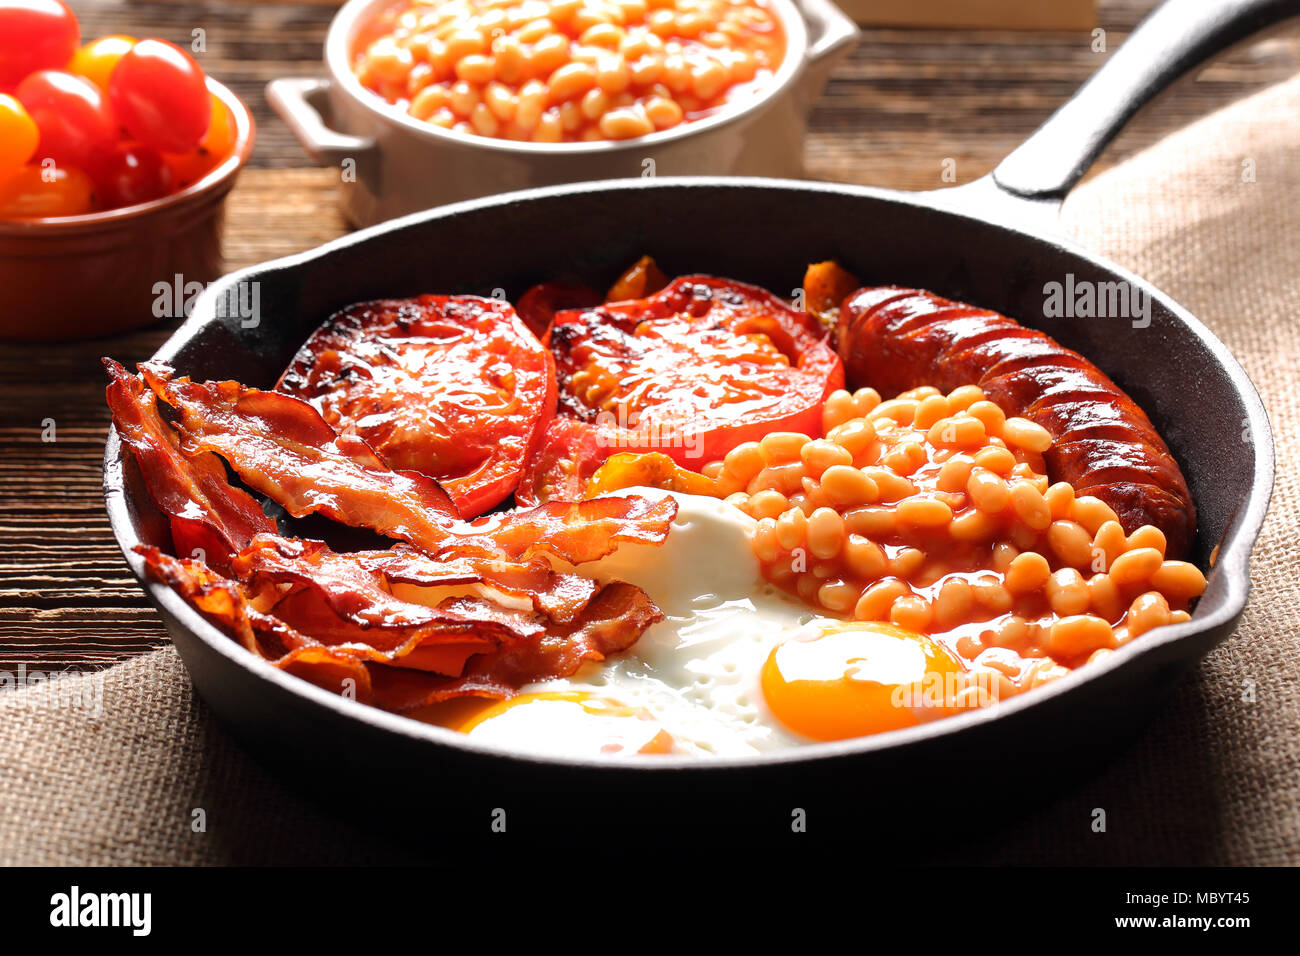 English Breakfast with sausages, grilled tomatoes, egg, bacon and beans on frying pan. - Stock Image